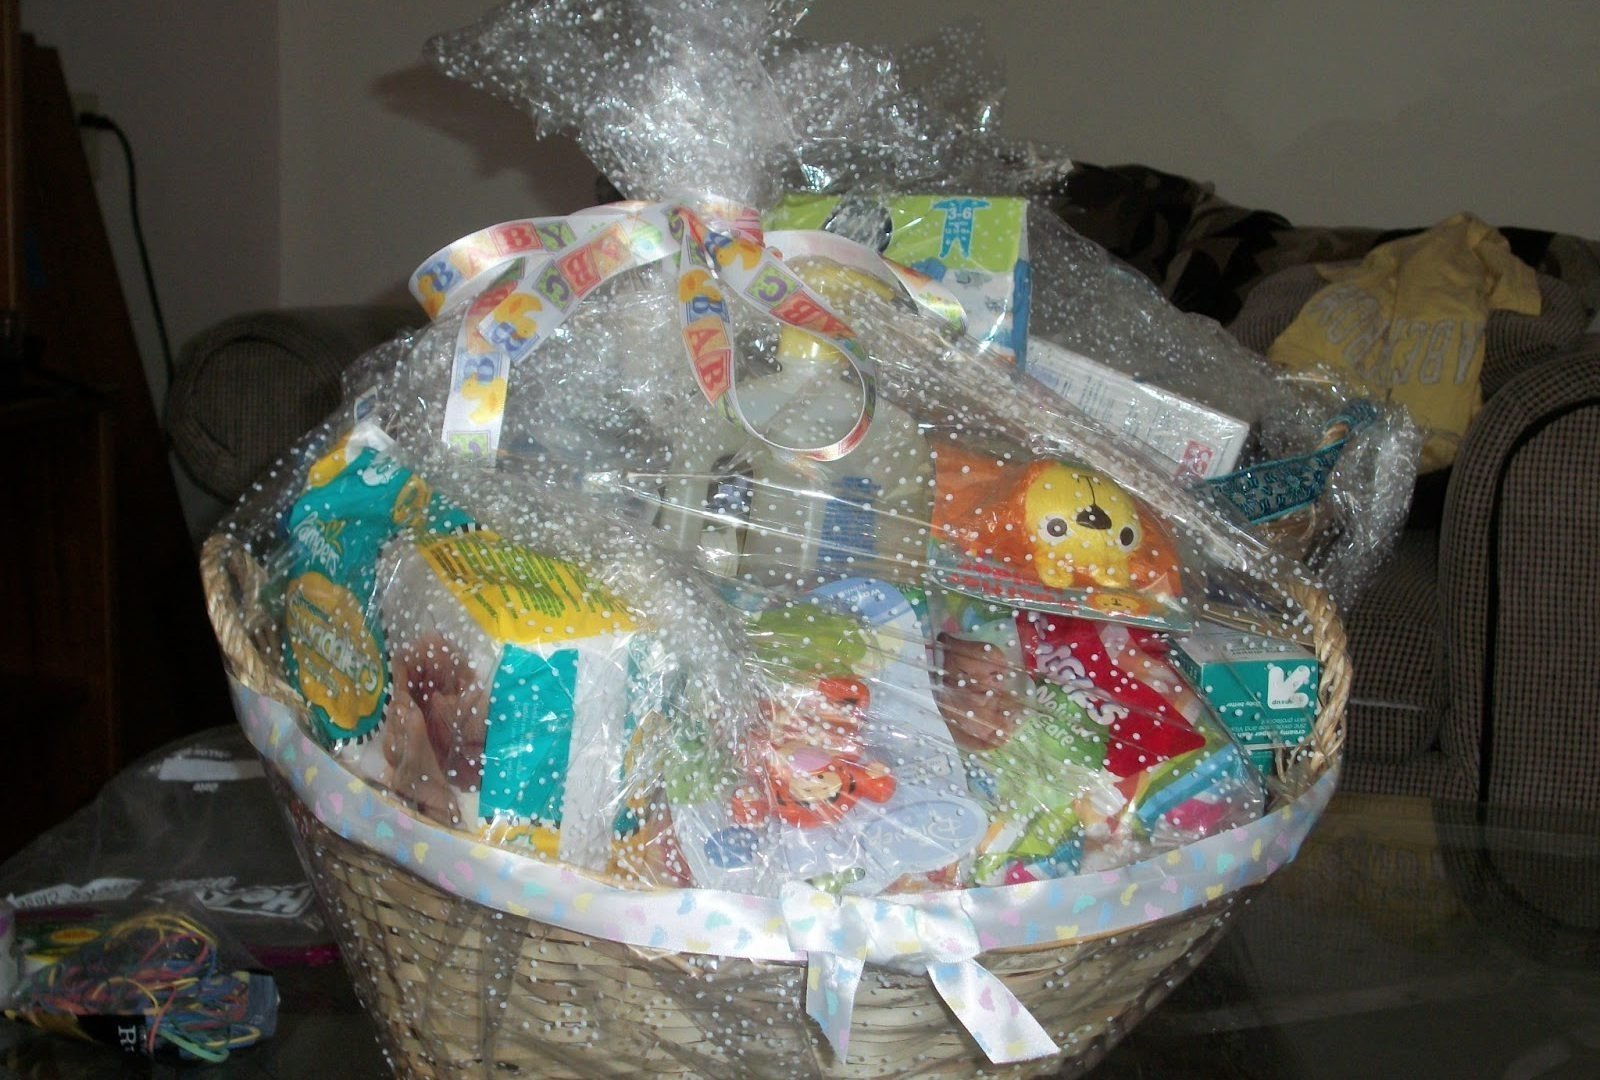 10 attractive baby shower gift baskets ideas 10 attractive baby shower gift baskets ideas baby shower gift basket ideas for guests heatherofcourse stunning negle Images